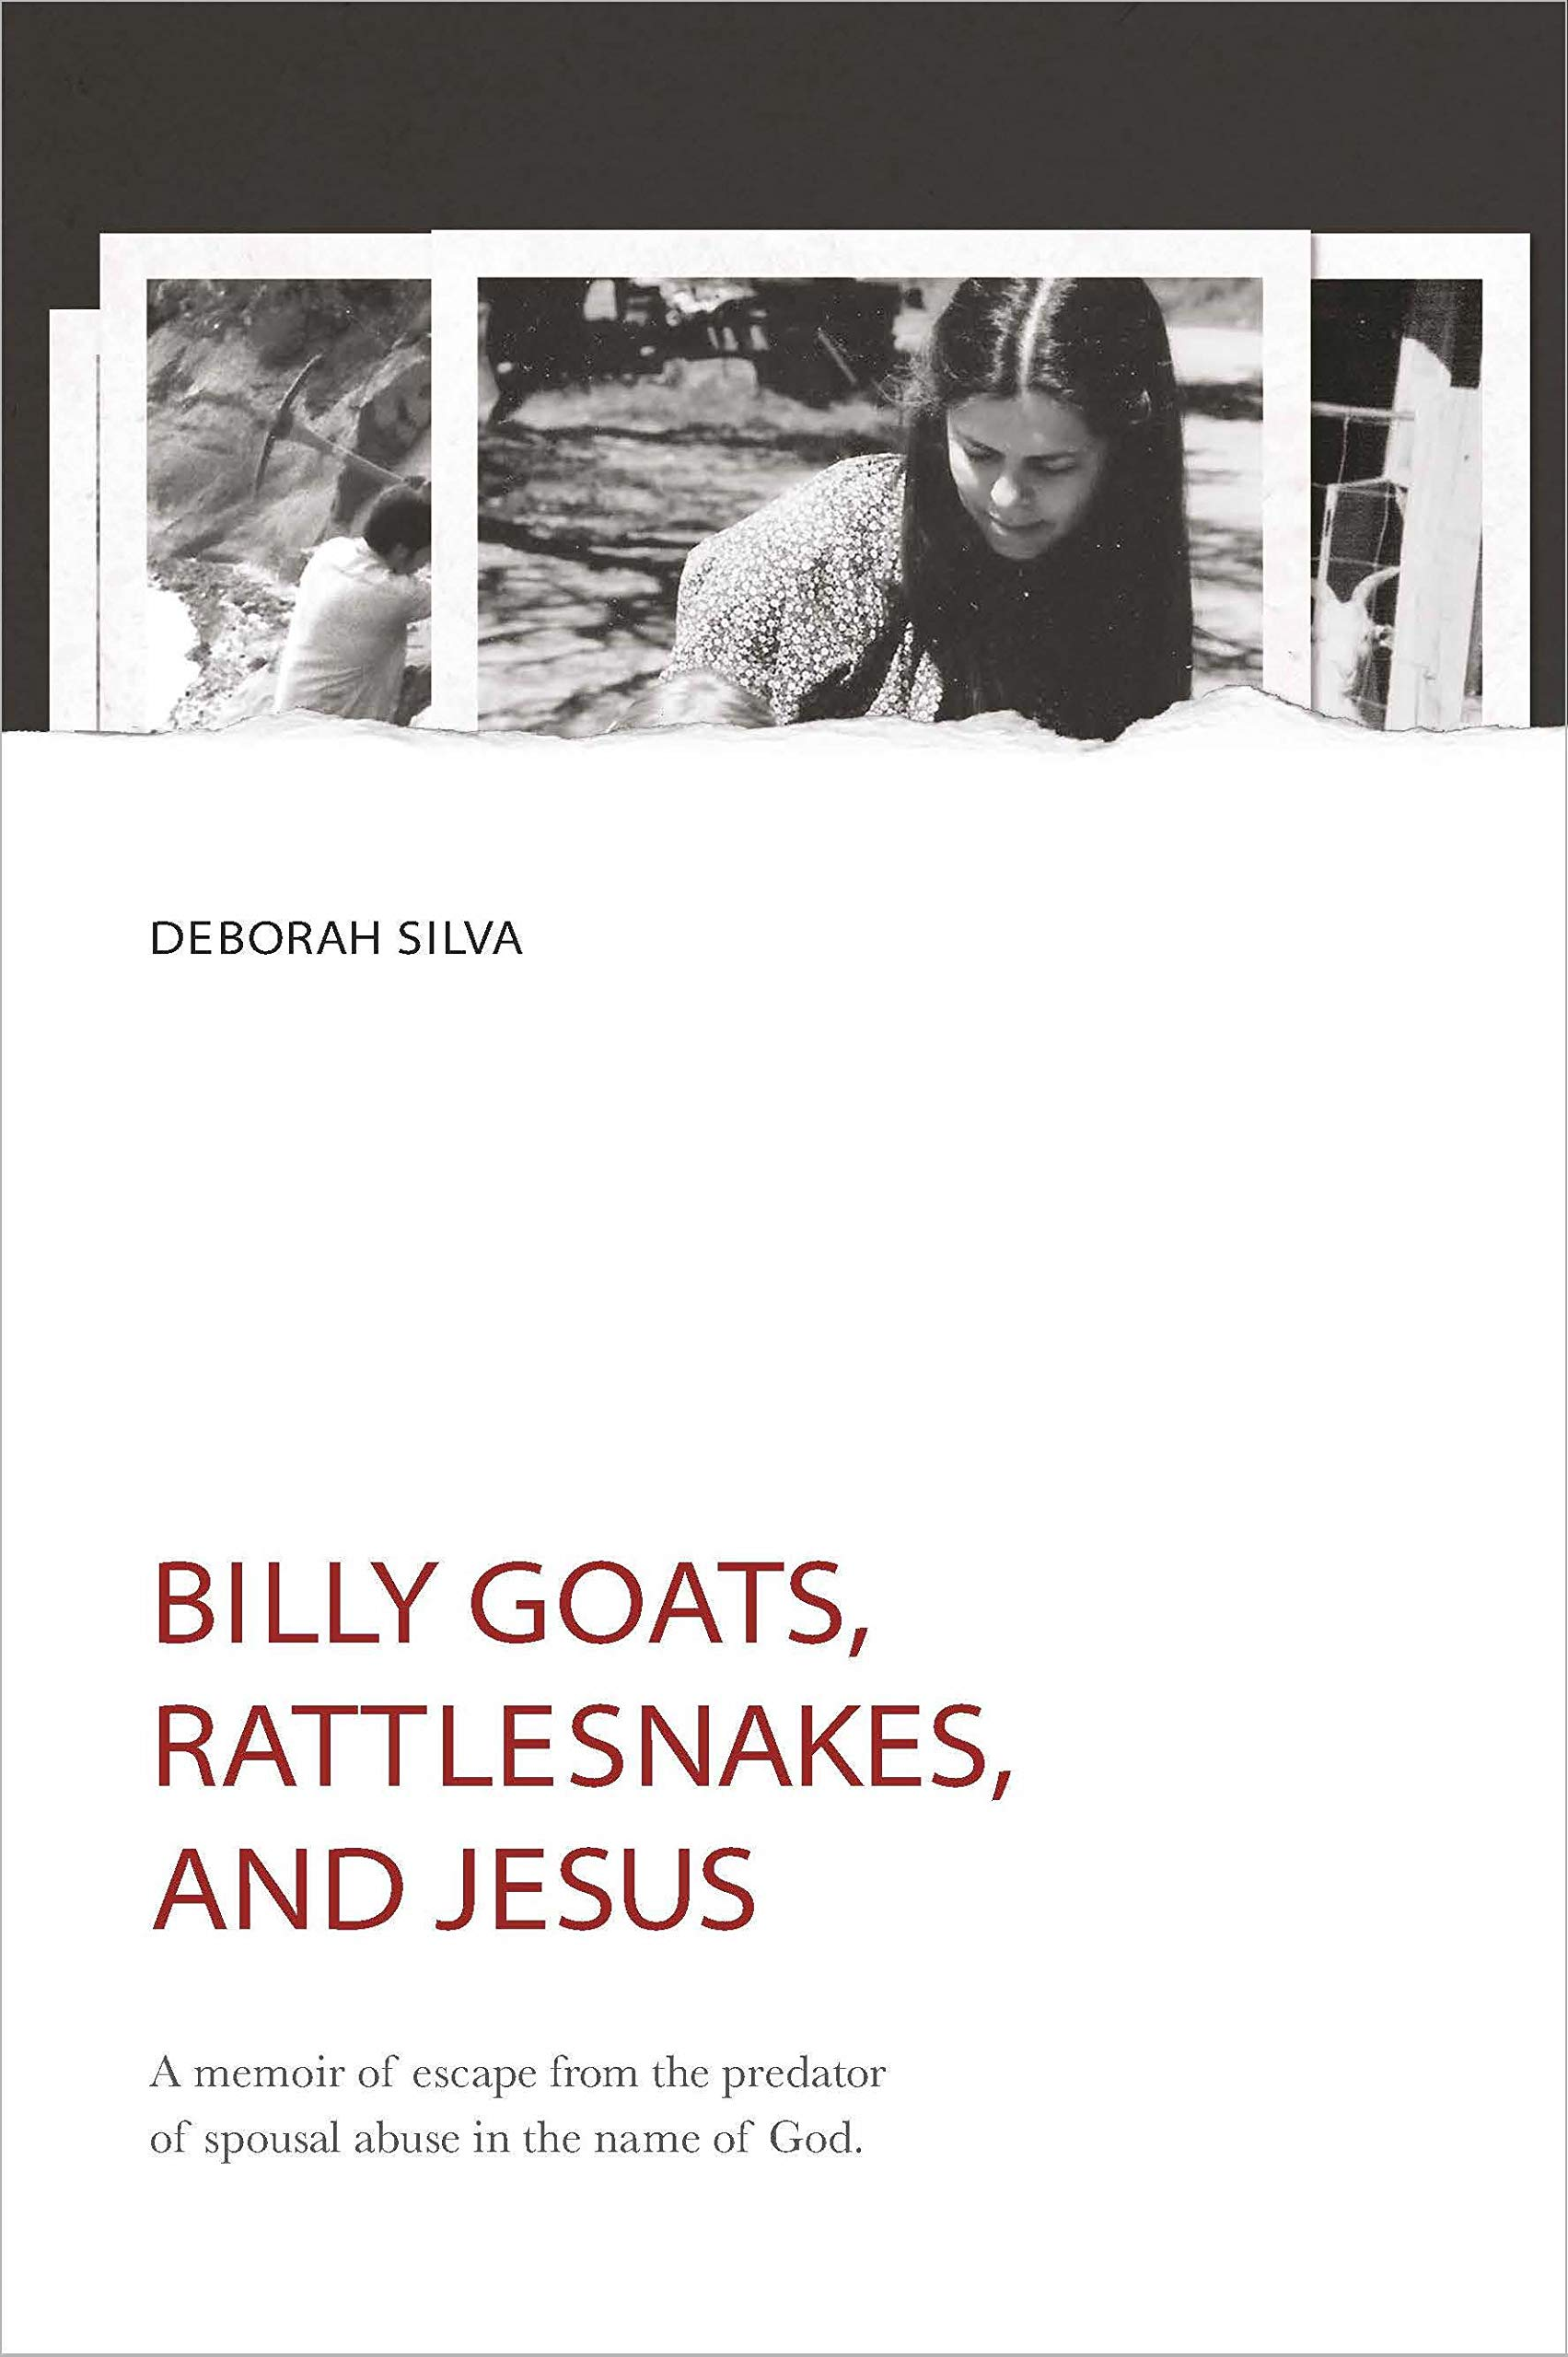 Billy Goats, Rattlesnakes, and Jesus: A memoir of escape from the predator of spousal abuse in the name of God. (Off Ramp Book 2)